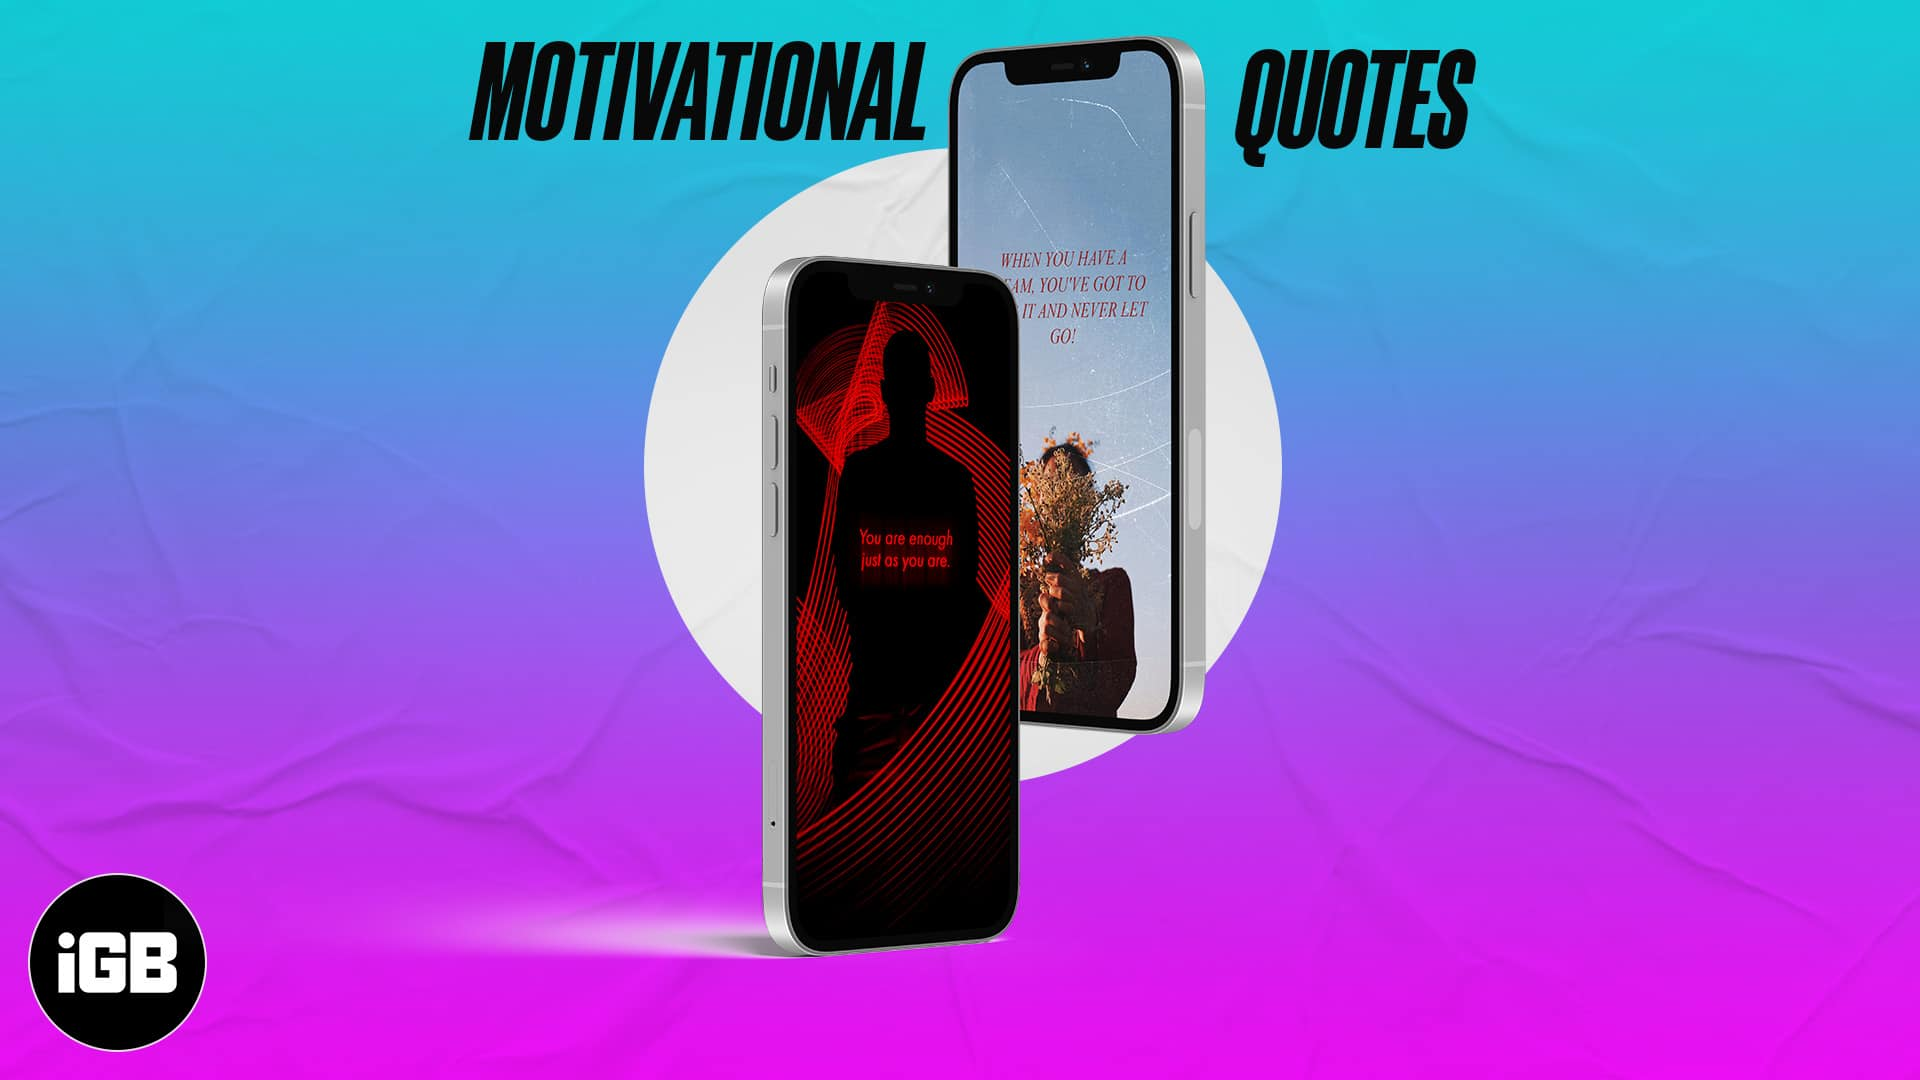 21 Motivational iPhone wallpapers to download in 21   iGeeksBlog